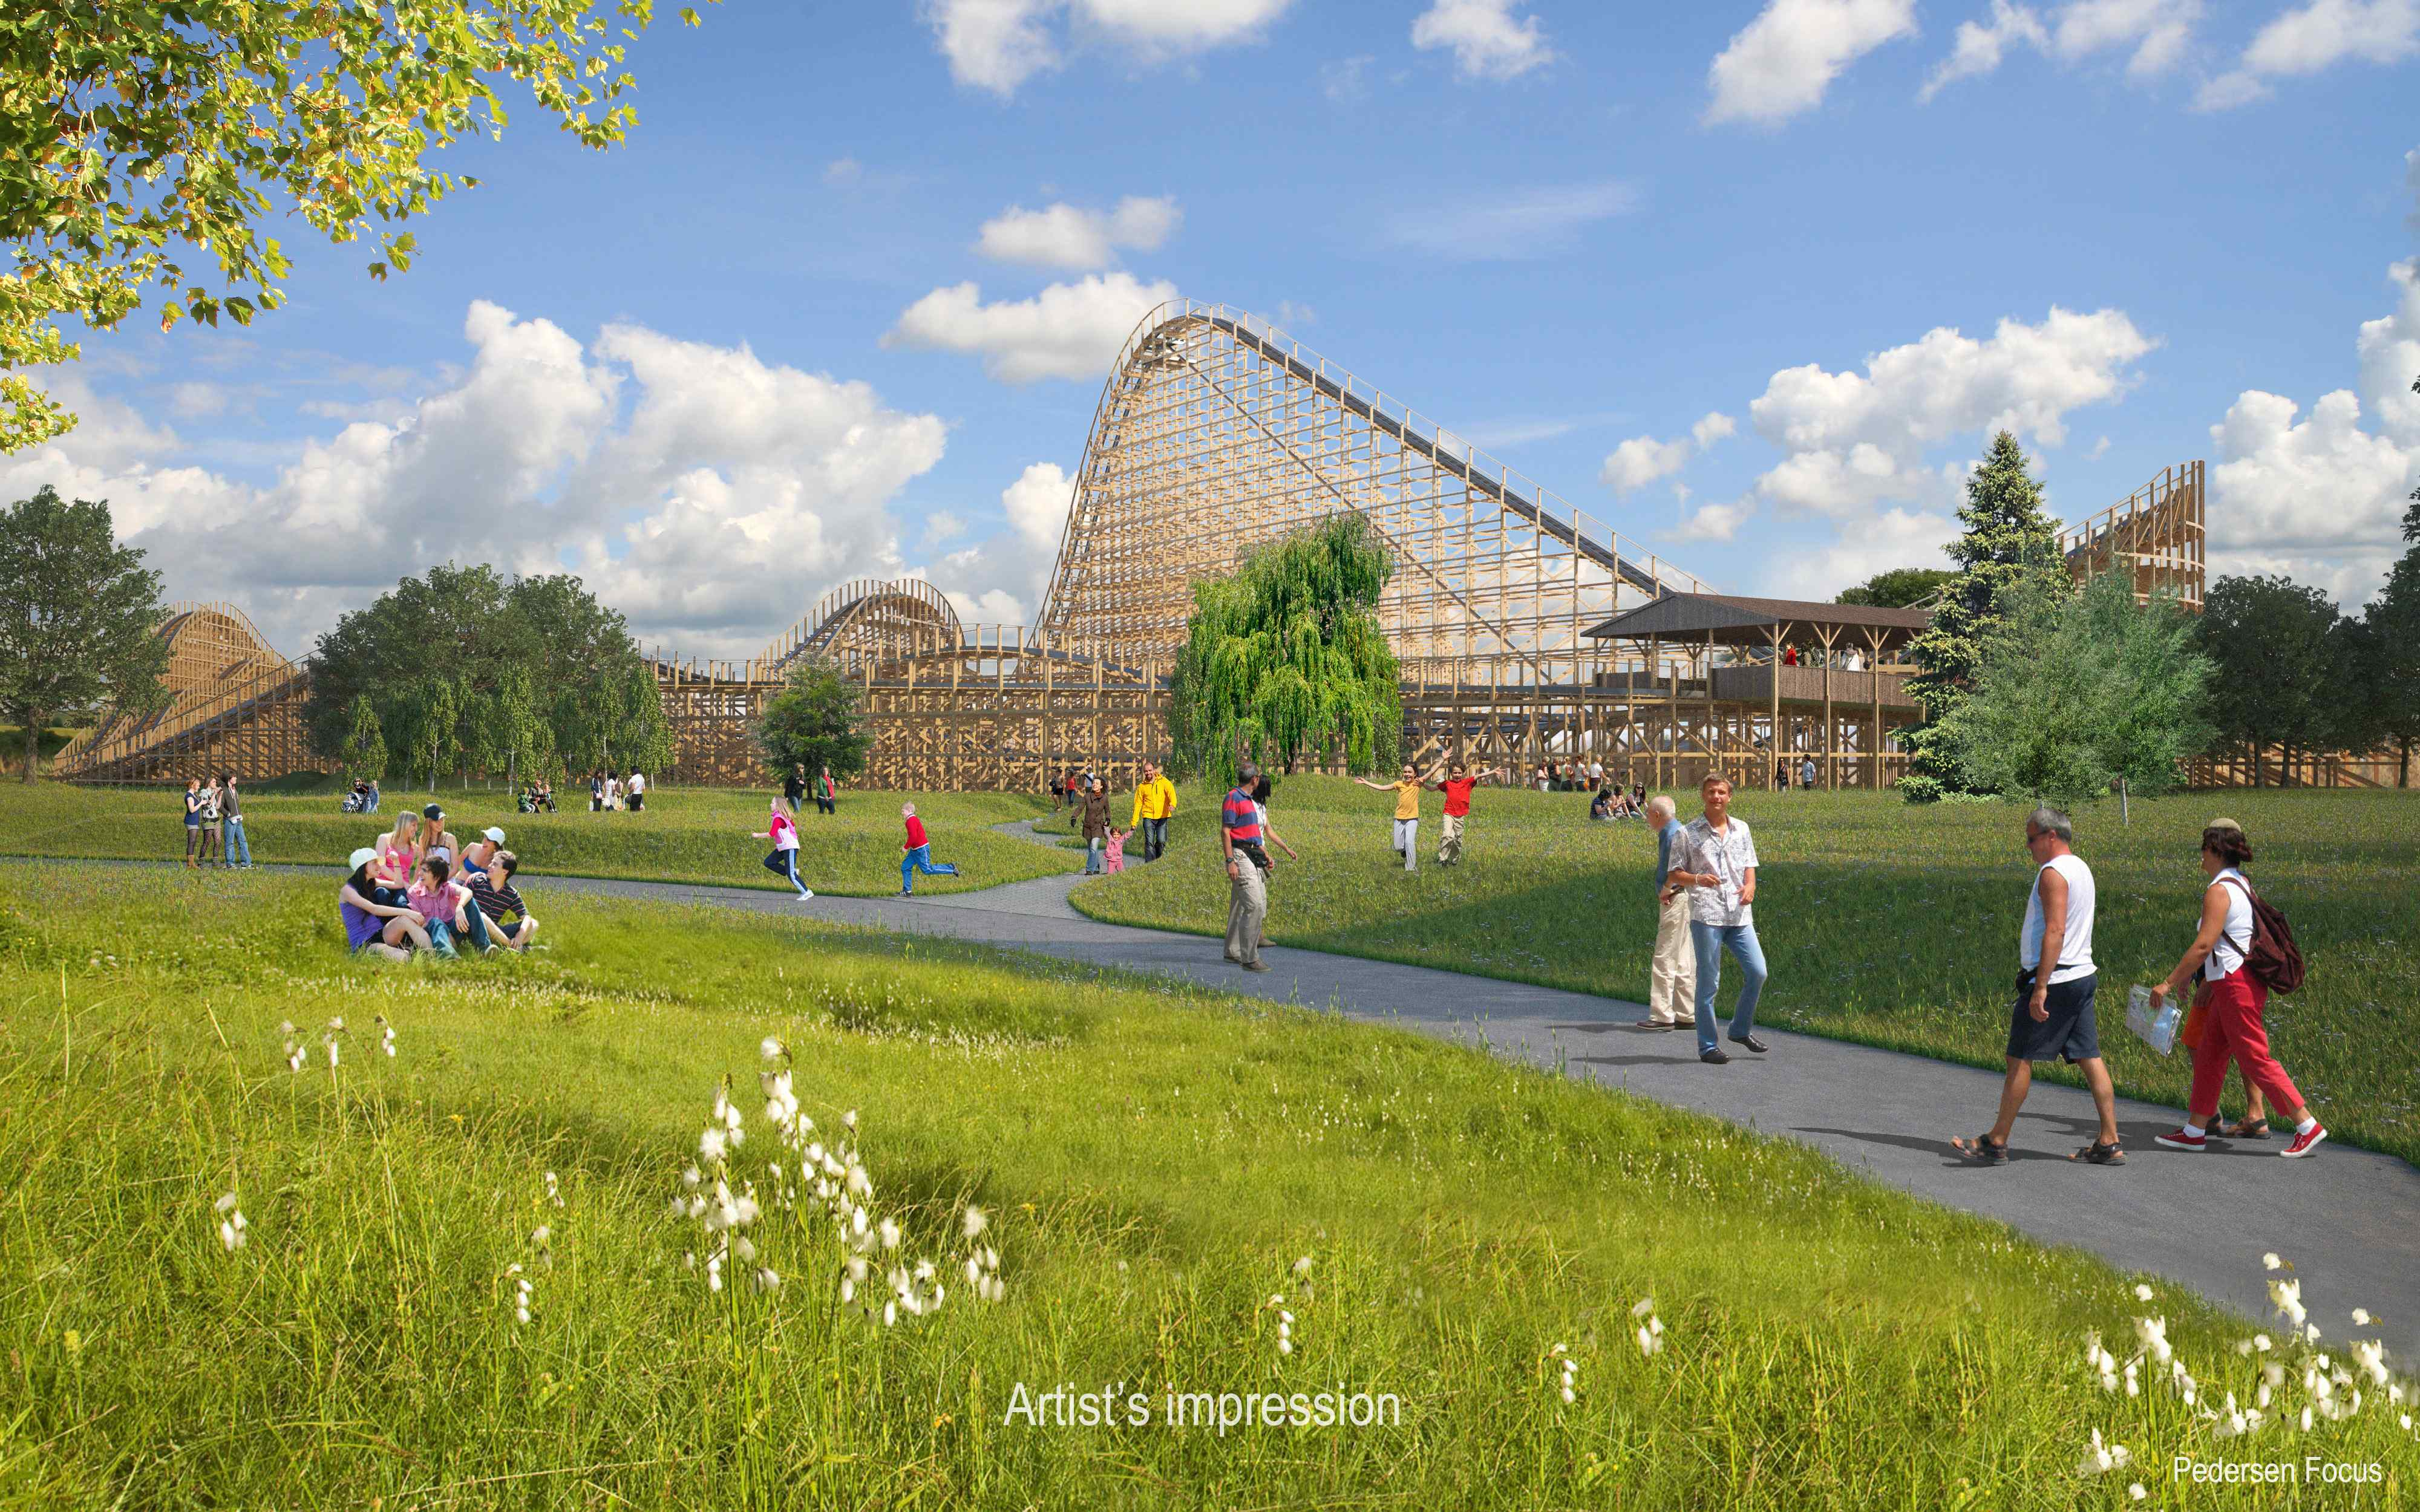 An artist's impression of the 1km-long wooden roller coaster slated to open in Tayto Park in Ireland next year / Pedersen Focus / Tayto Park